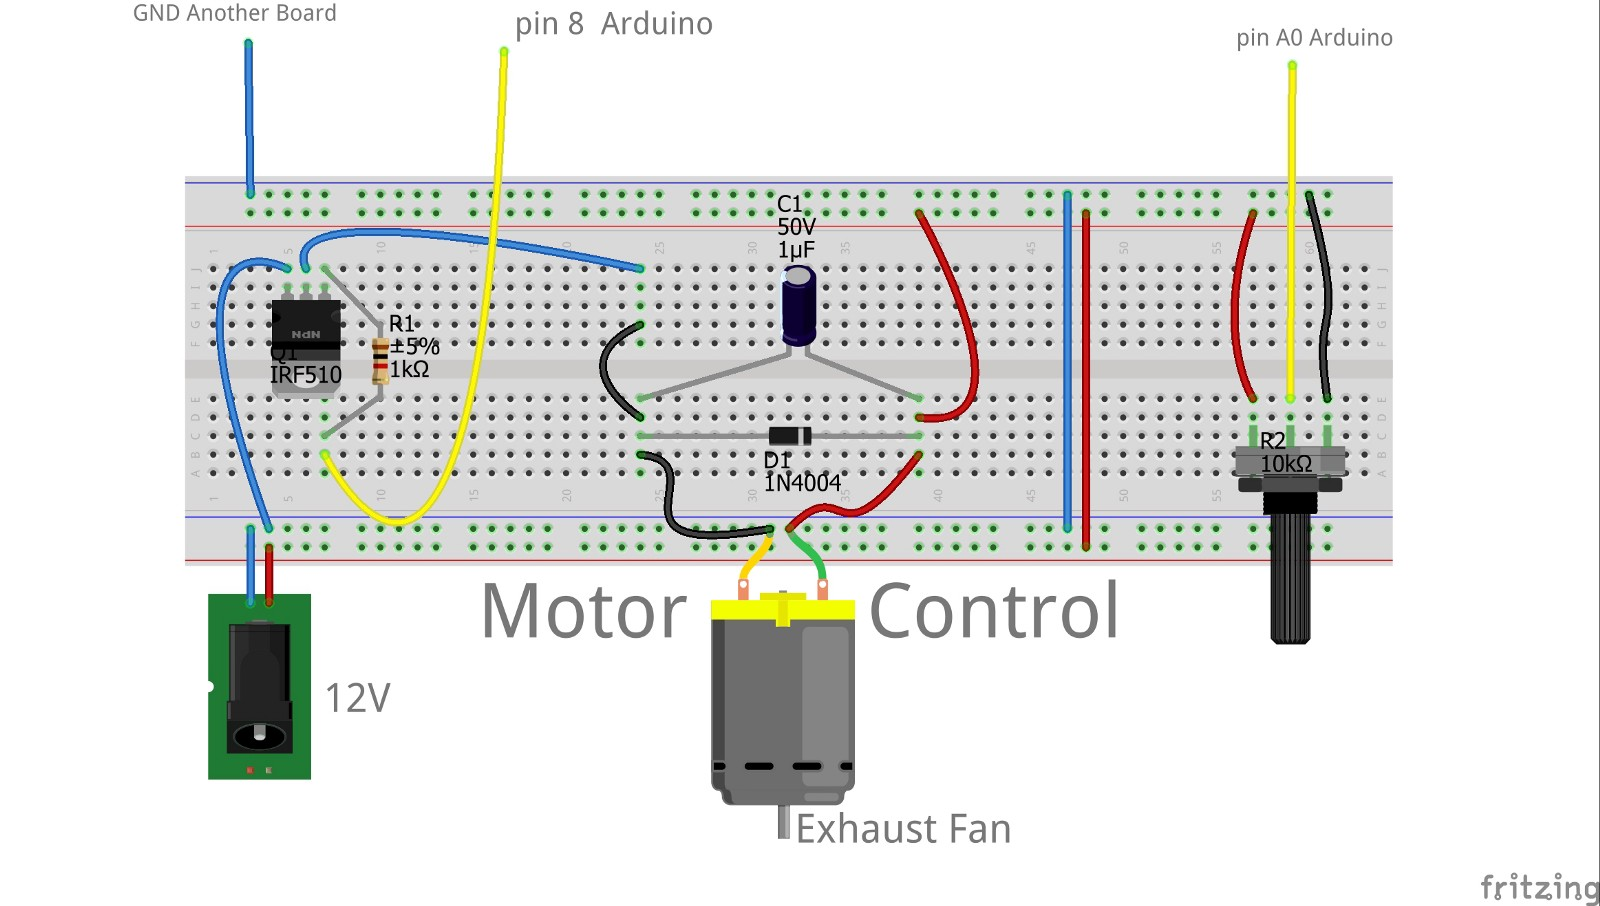 Speed Fan Controller See The Figure This Useful Circuit Reduces